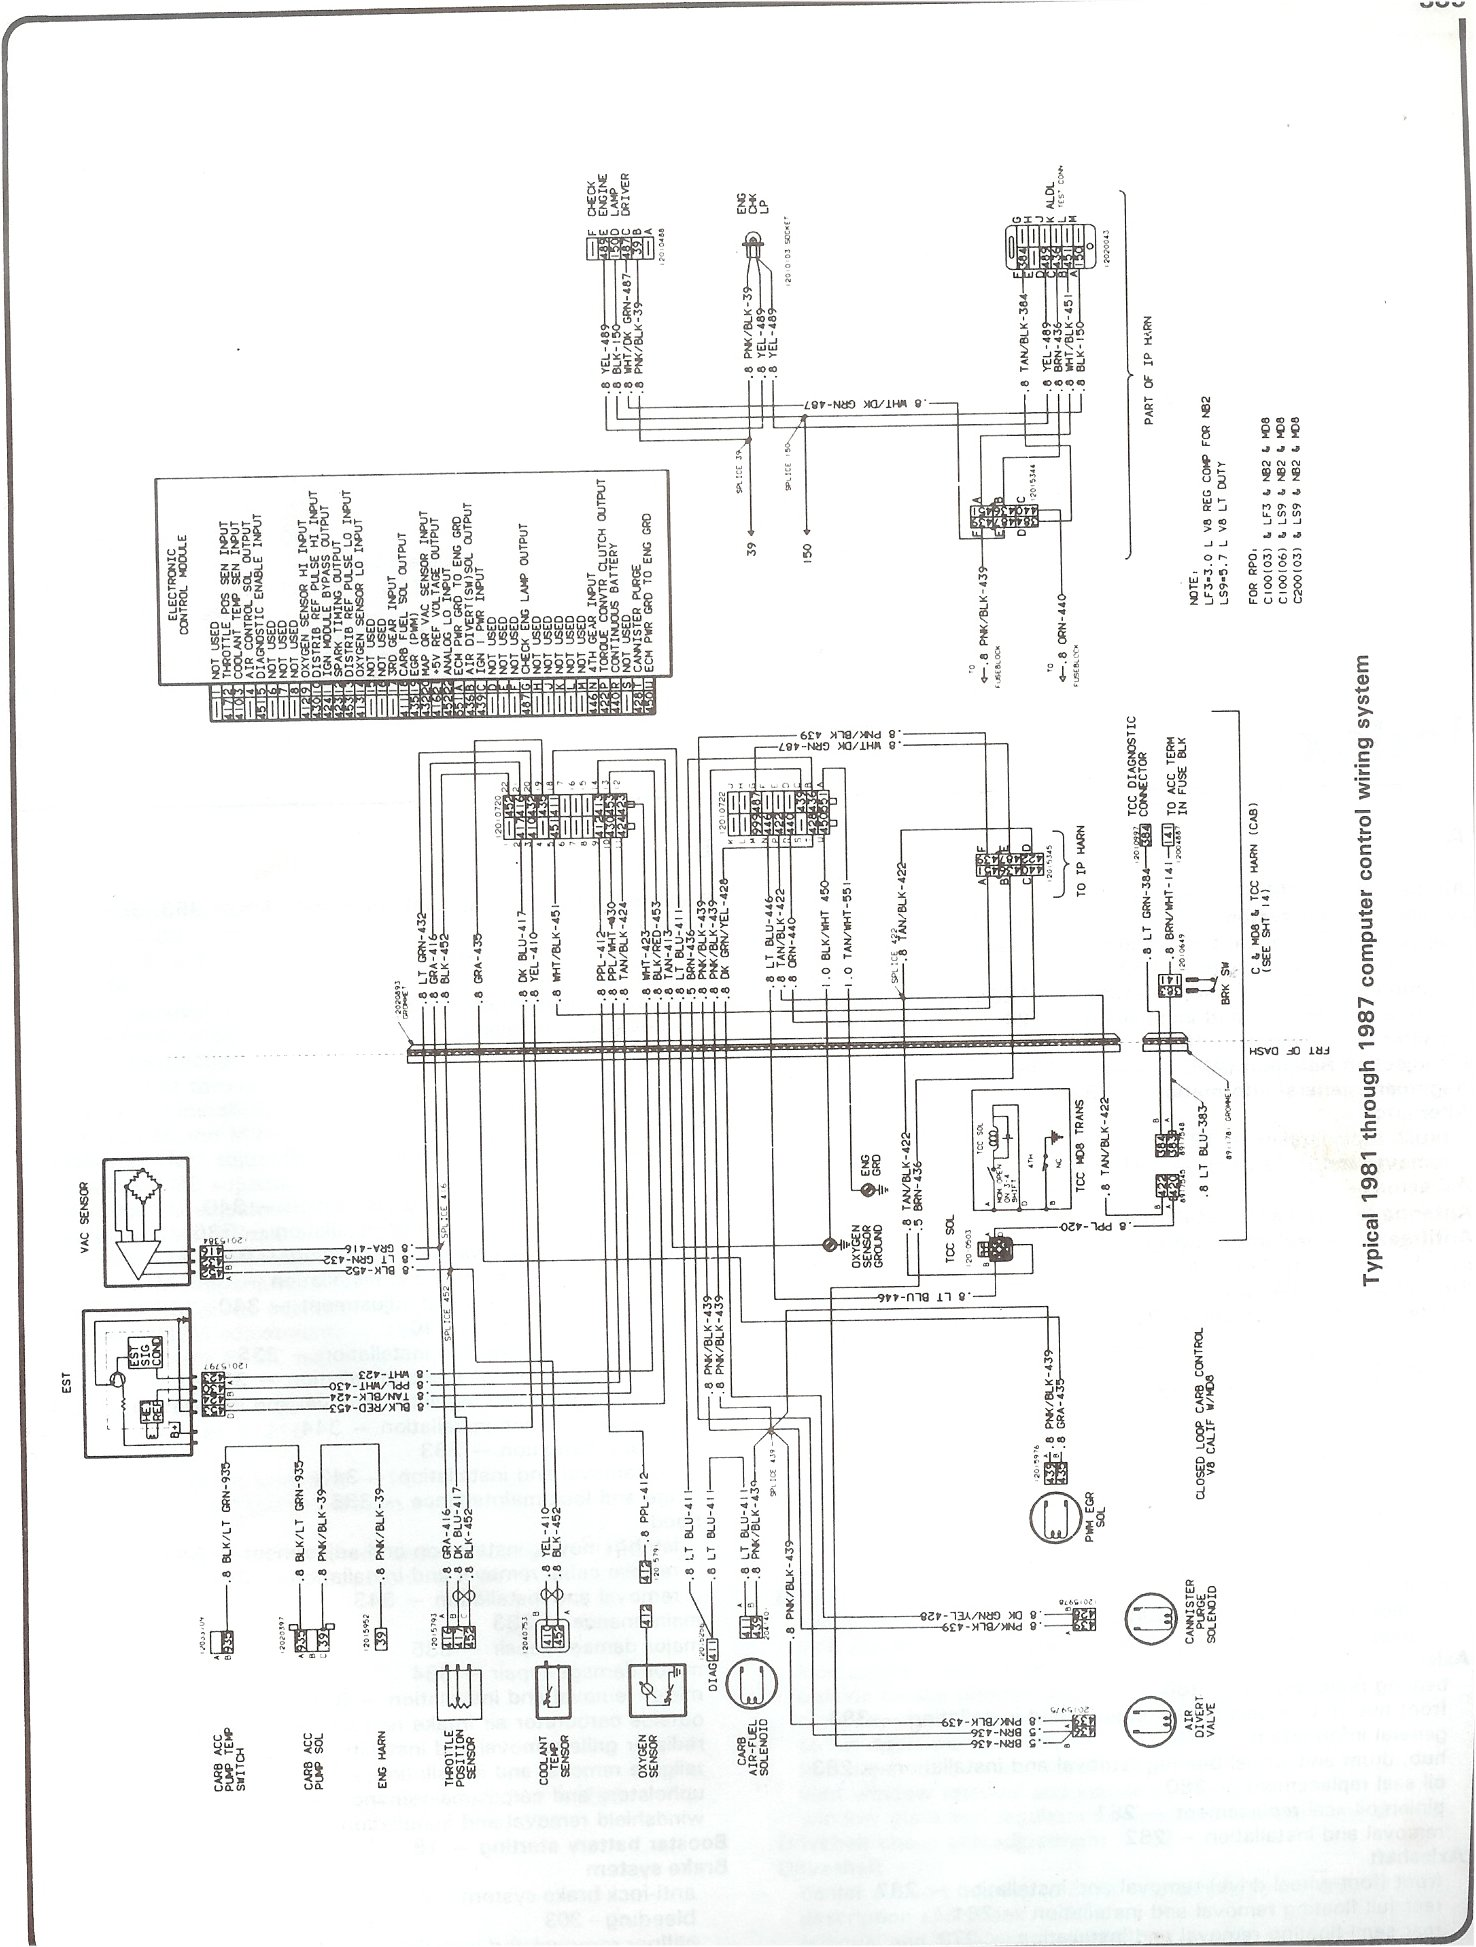 81 87_computer_control_wiring 1984 chevy c10 wiring diagram 68 chevy c10 wiring diagram \u2022 wiring Keystone EPI2 Manual at readyjetset.co